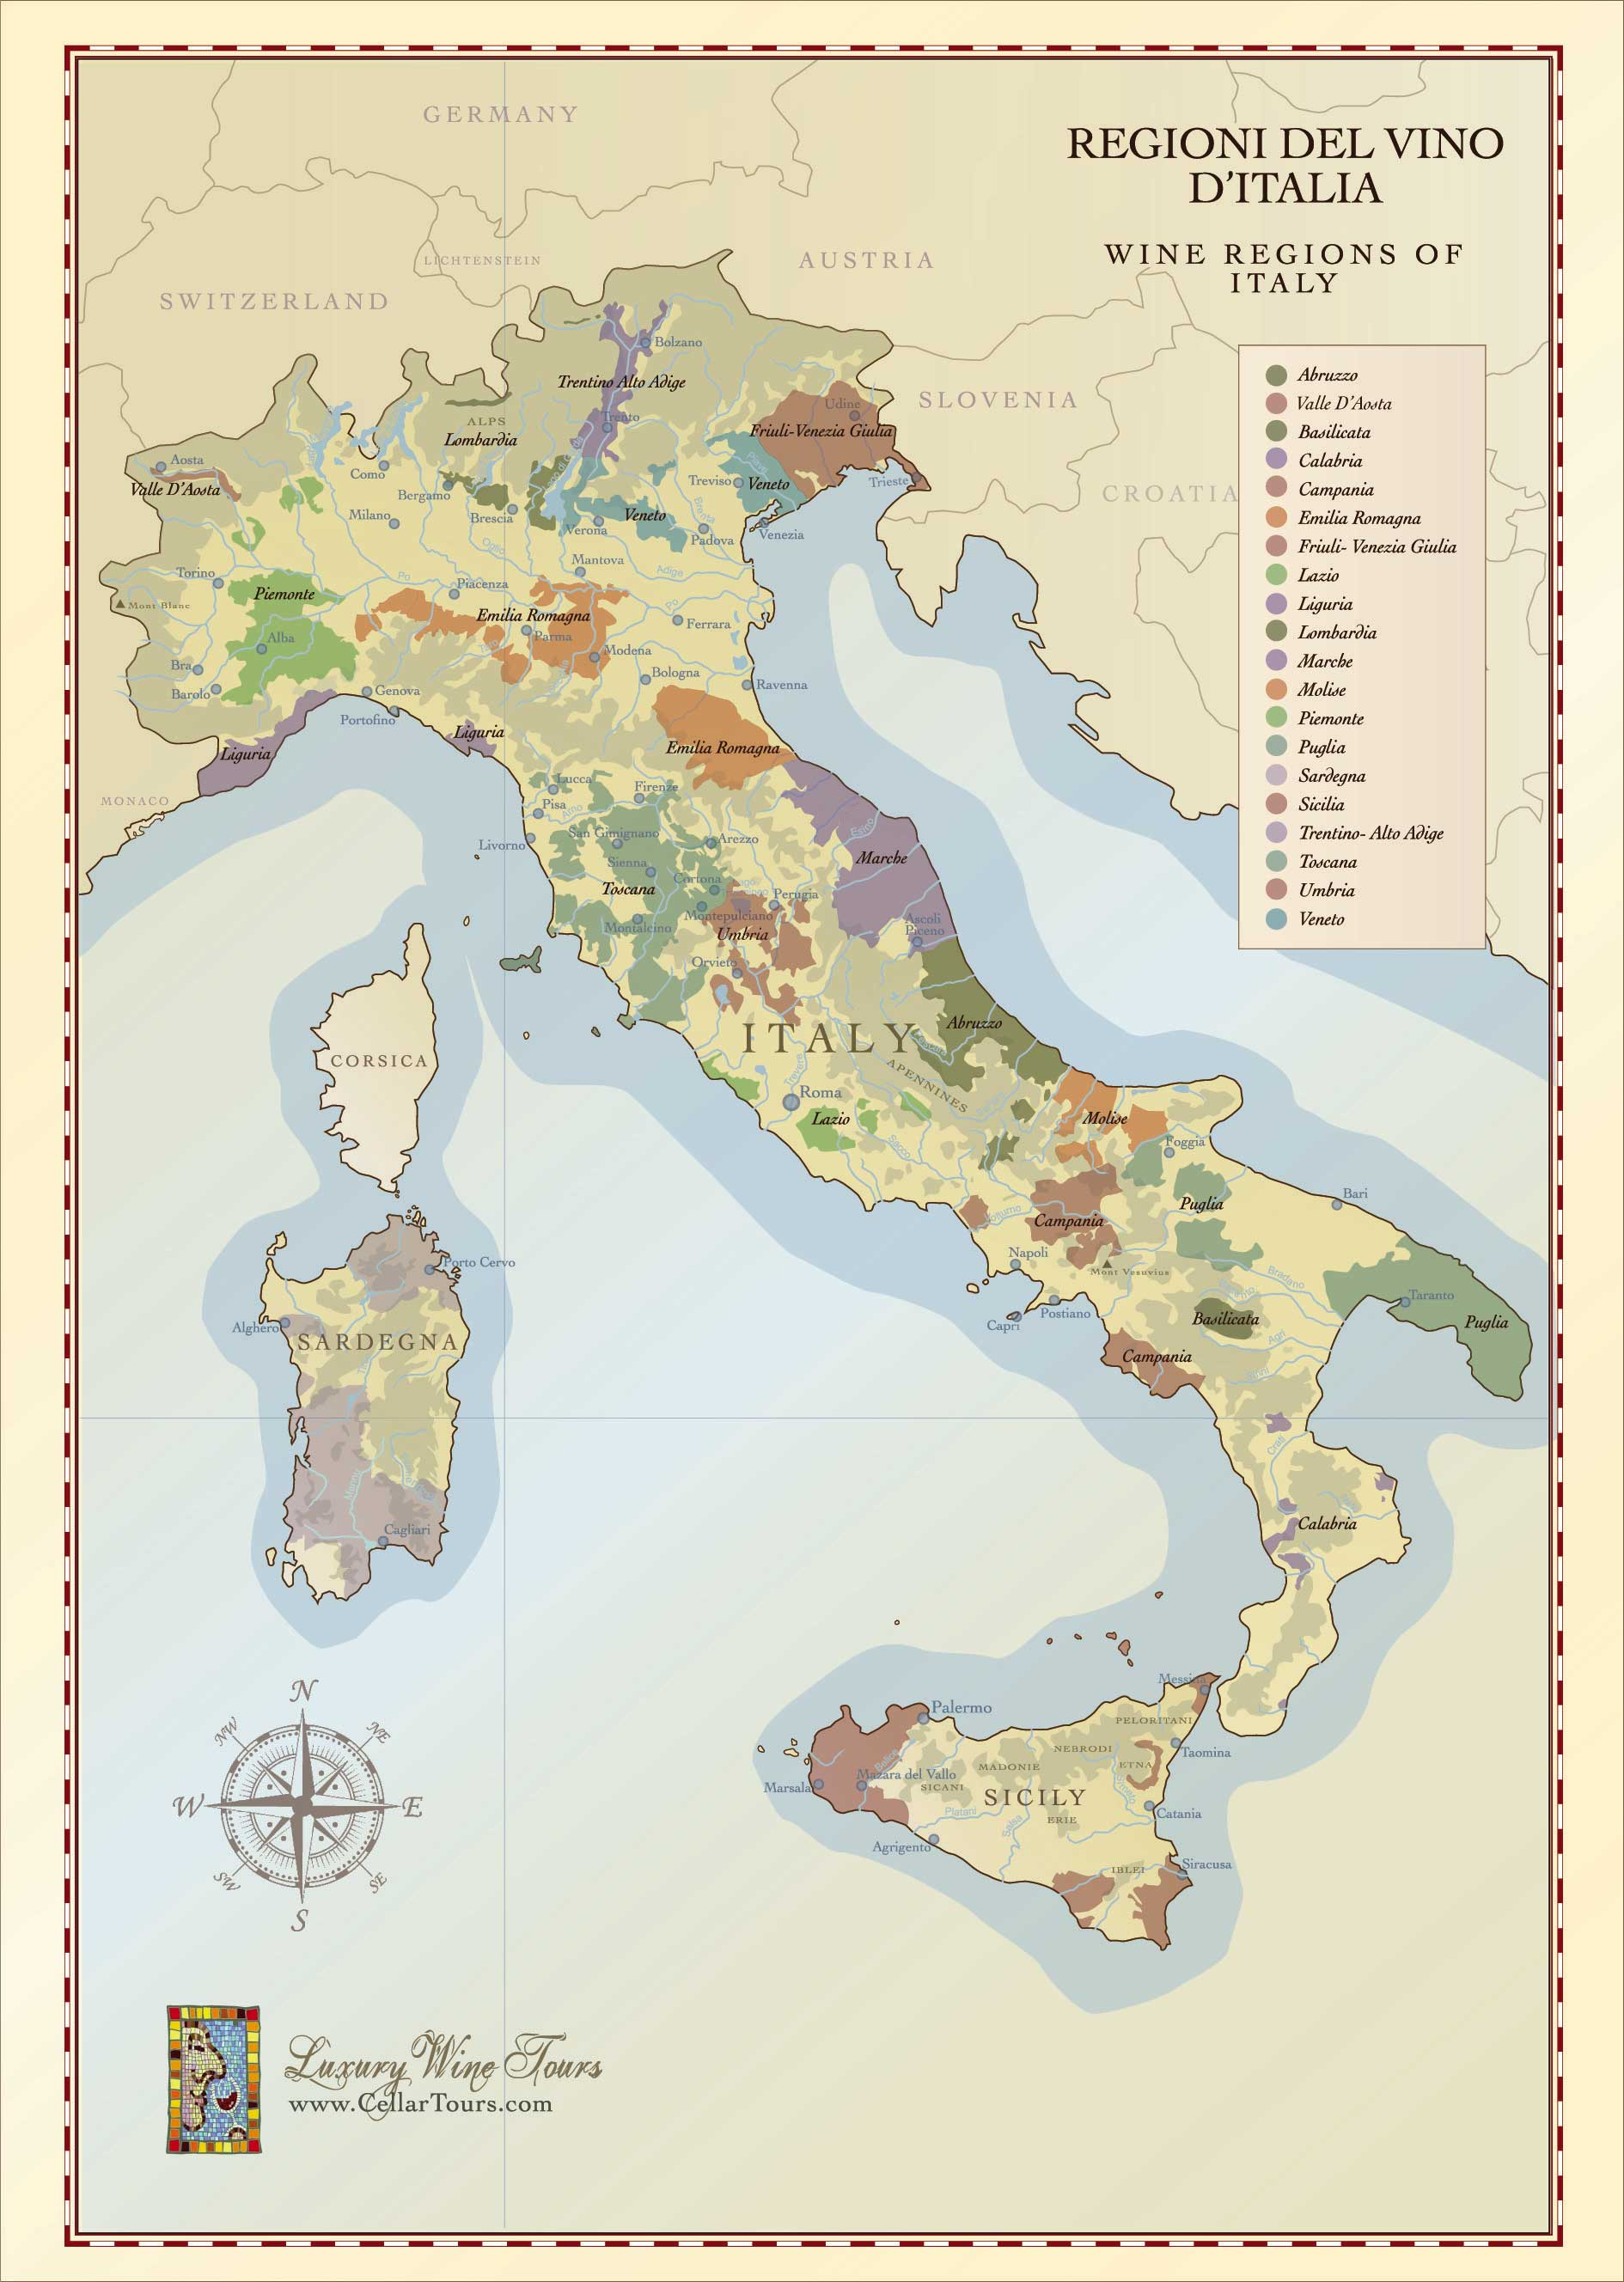 italy a map of italian wine regions - subscribe to the newsletter